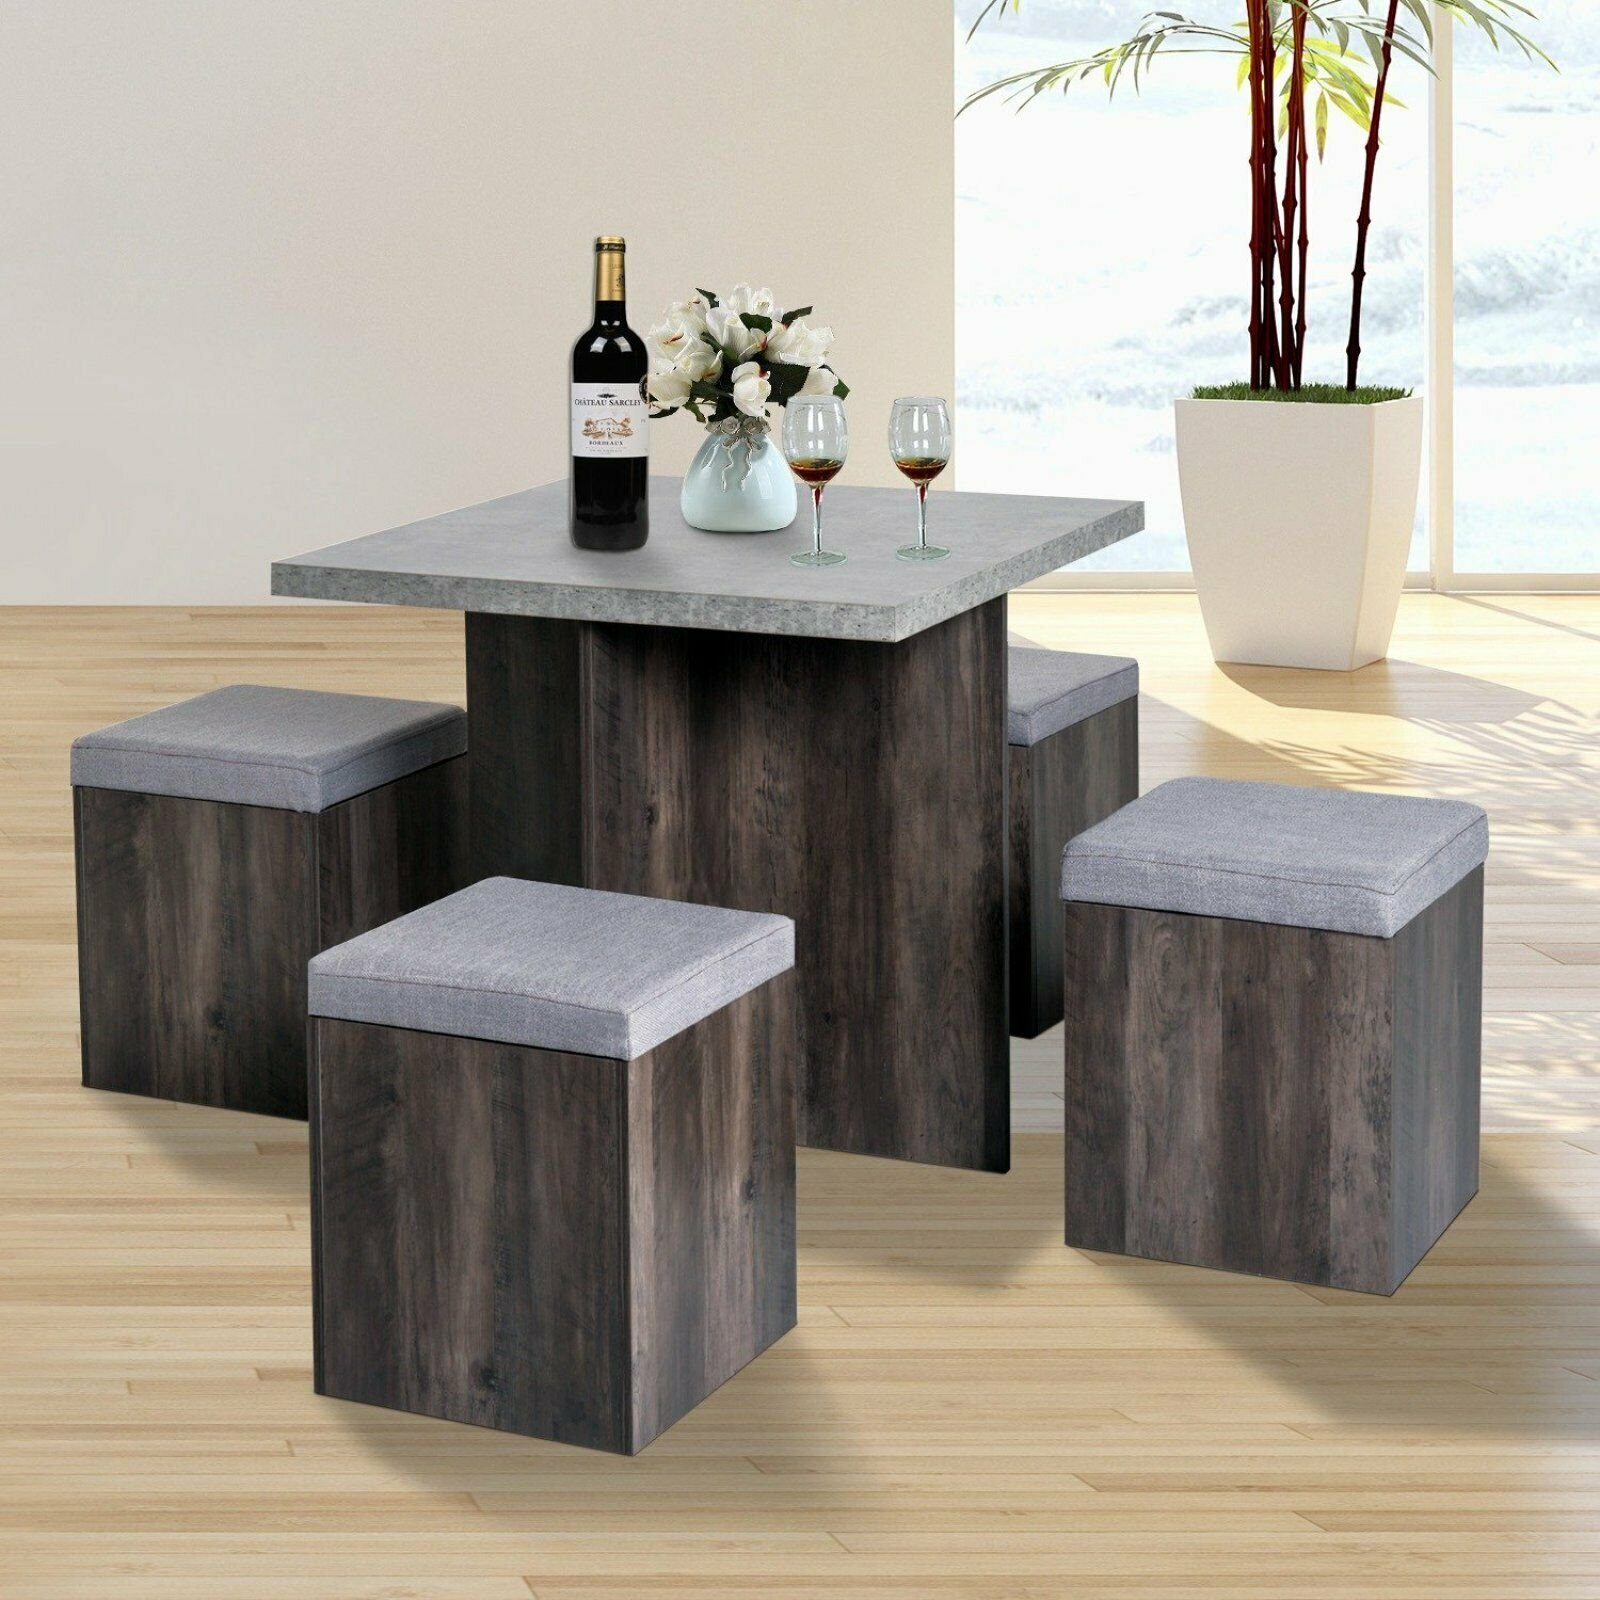 Details About Stowaway Dining Set Table And 4 Chairs Stools Compact E Saver Wooden Kitchen